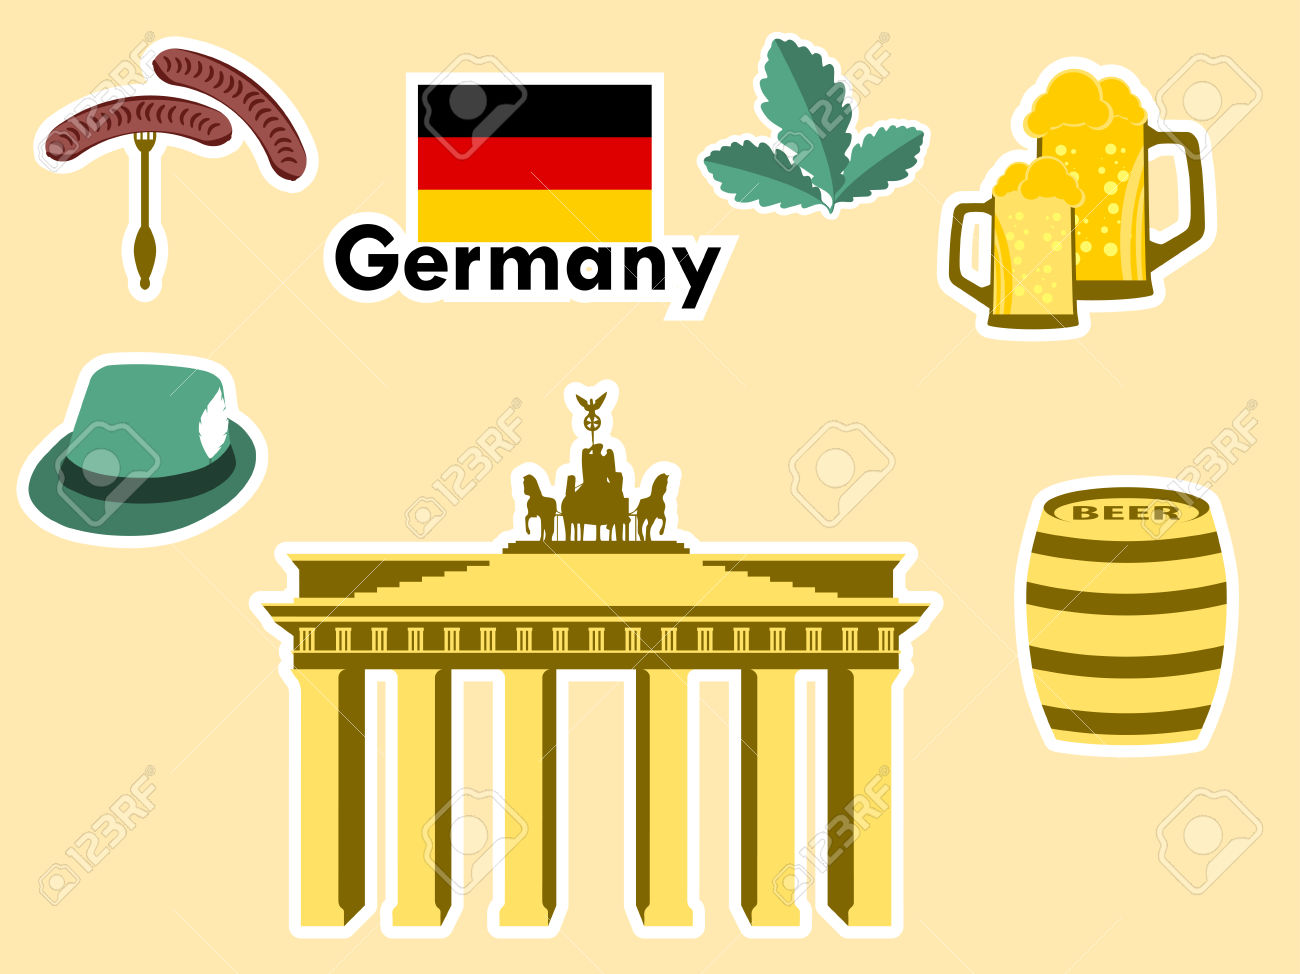 German Stickers, Germany Symbols, The Brandenburg Gate, Beer.